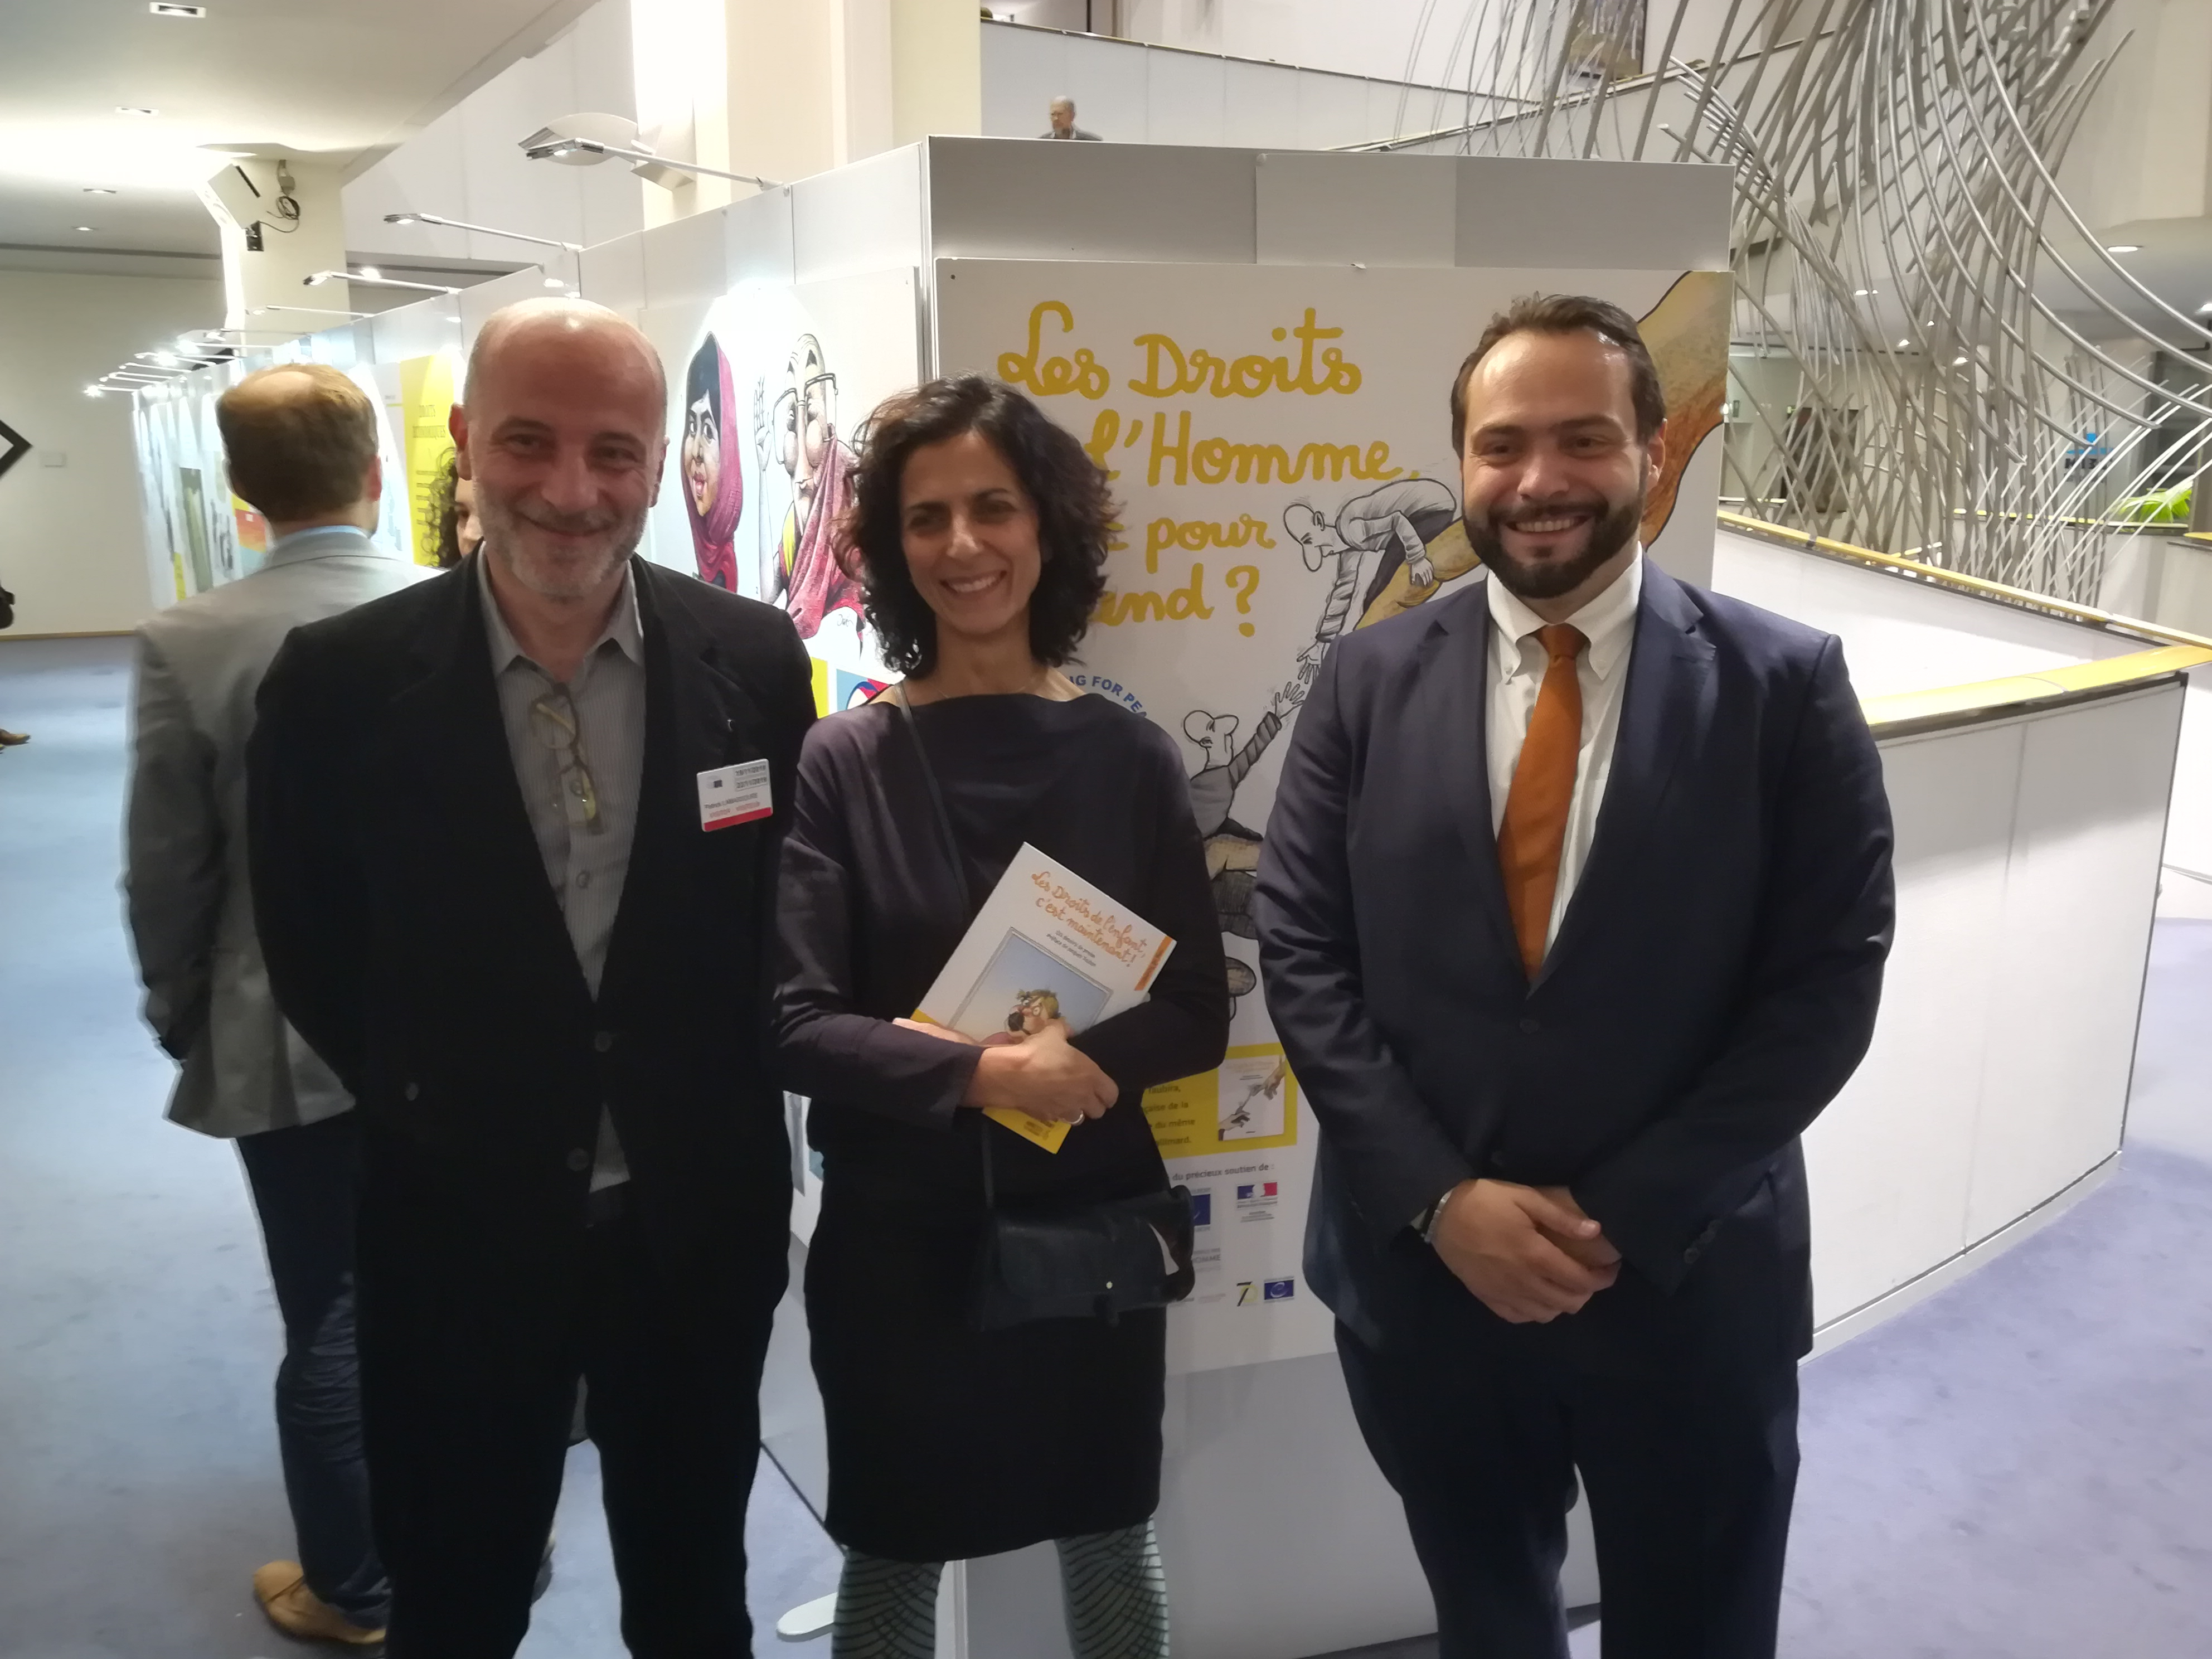 Opening of the exhibition with Kak, president of Cartooning for Peace, Maria Arena, European deputy, and Fabio Castaldo, Vice-President of the European Parliament